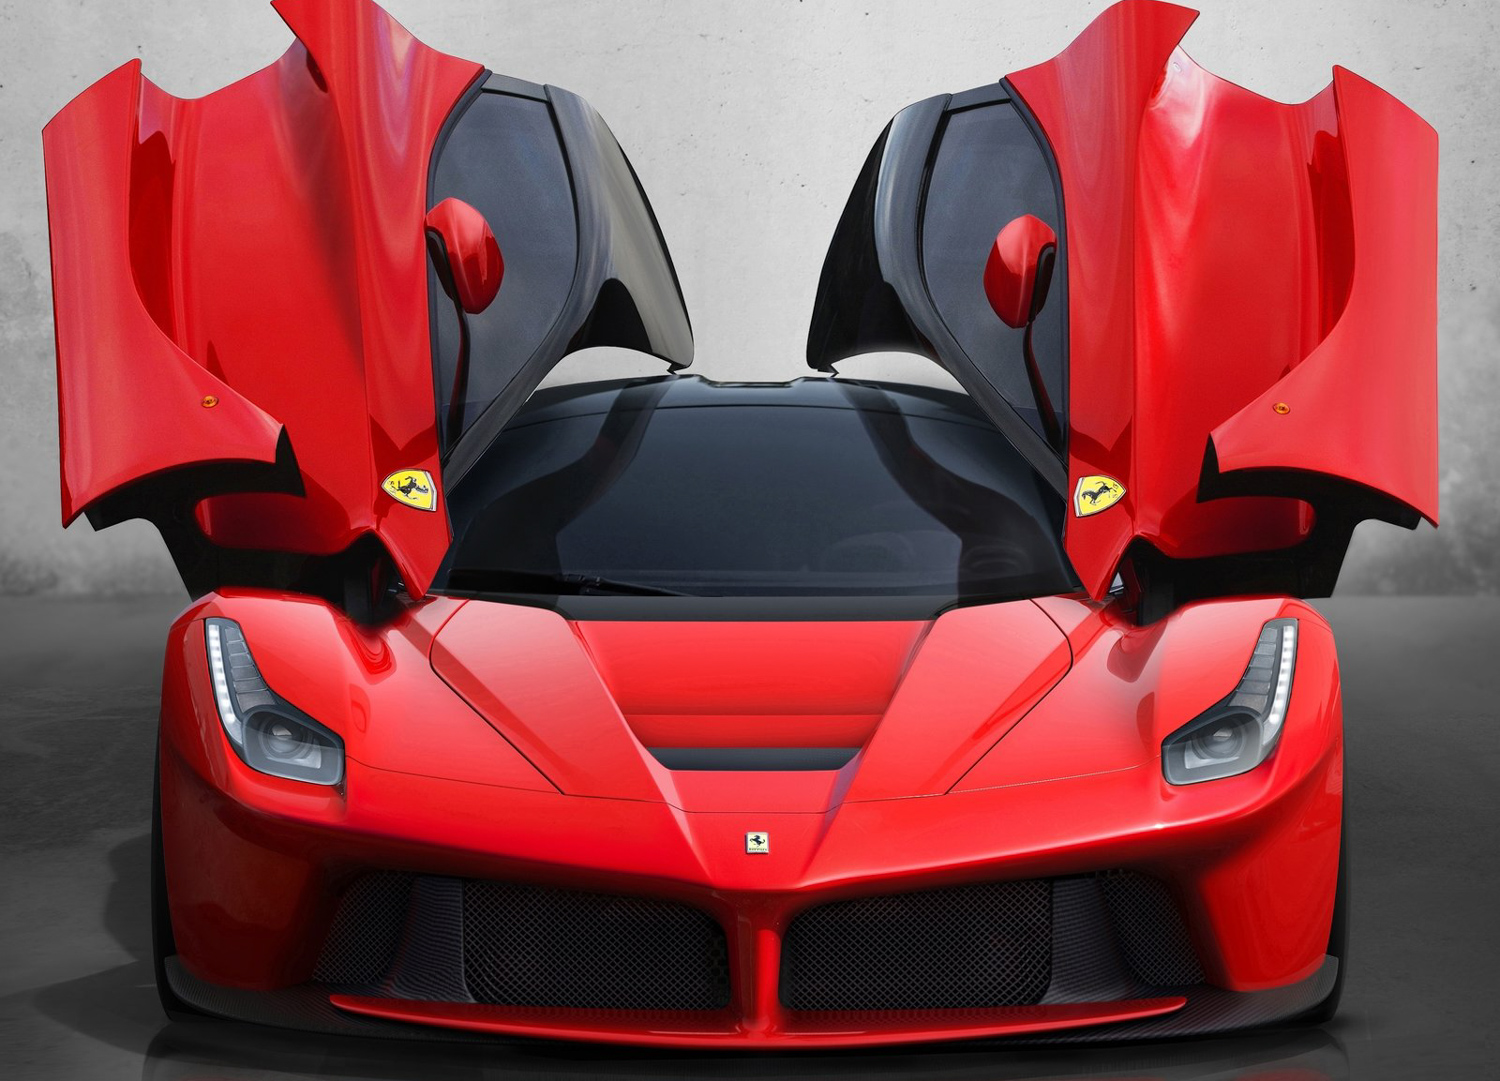 2014 Ferrari LaFerrari side view